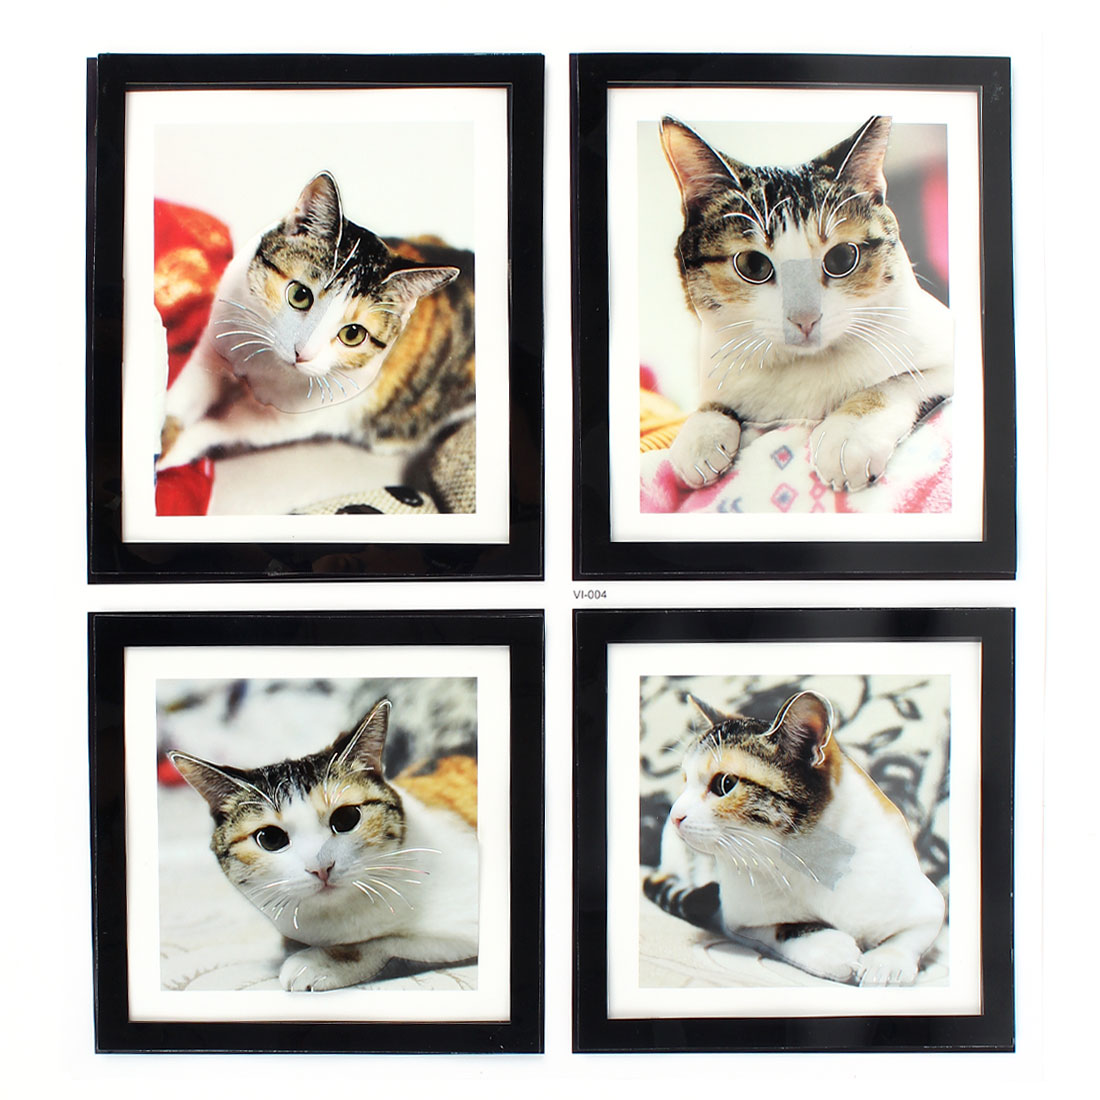 Home Living Room Decor 4 in 1 Cat Pictures 3D Wall Stickers Set Decal